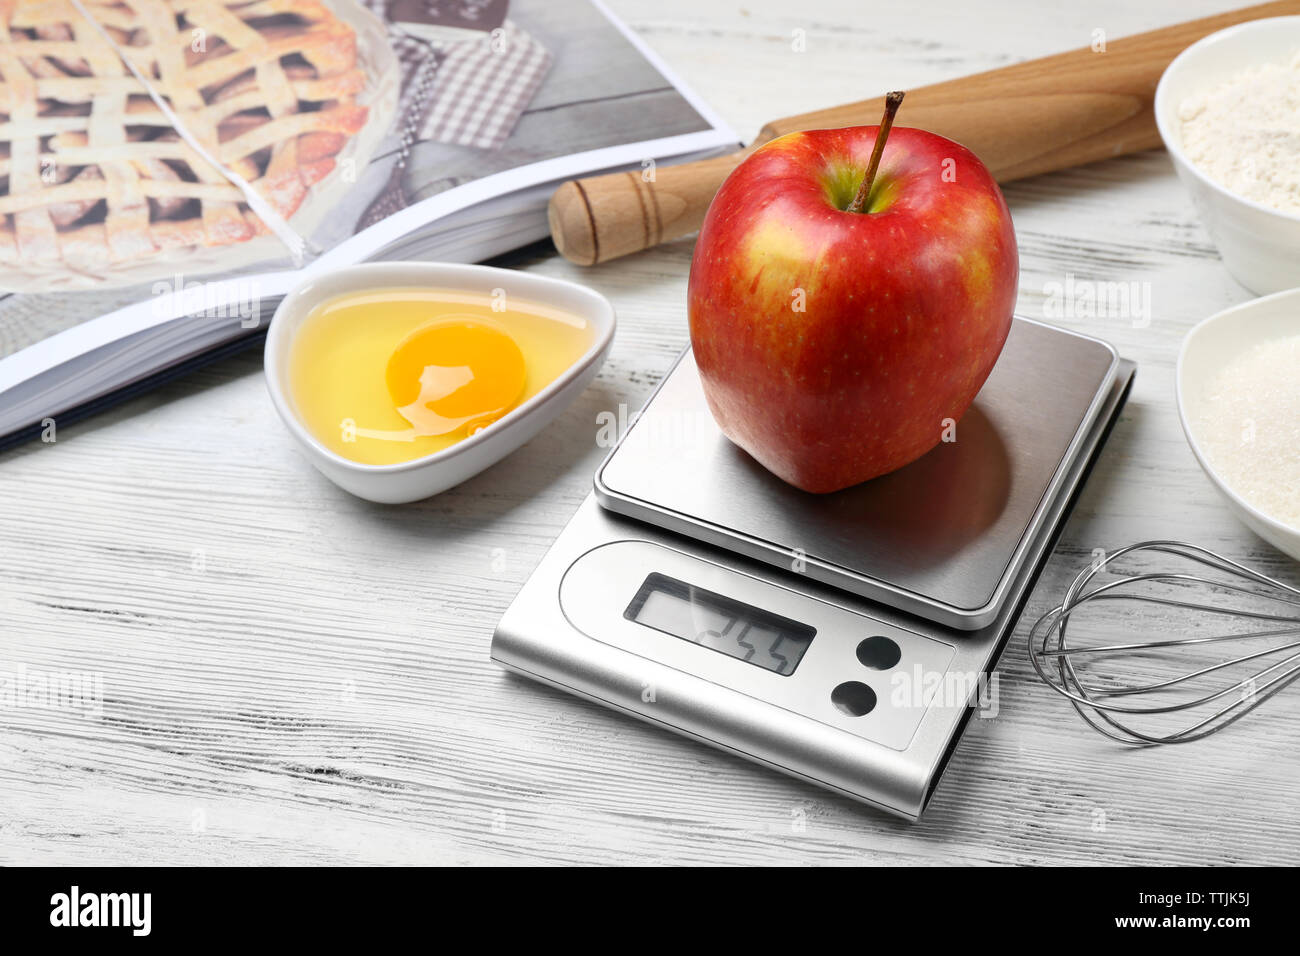 Apple with digital kitchen scales on wooden table. Cooking apple cake concept - Stock Image